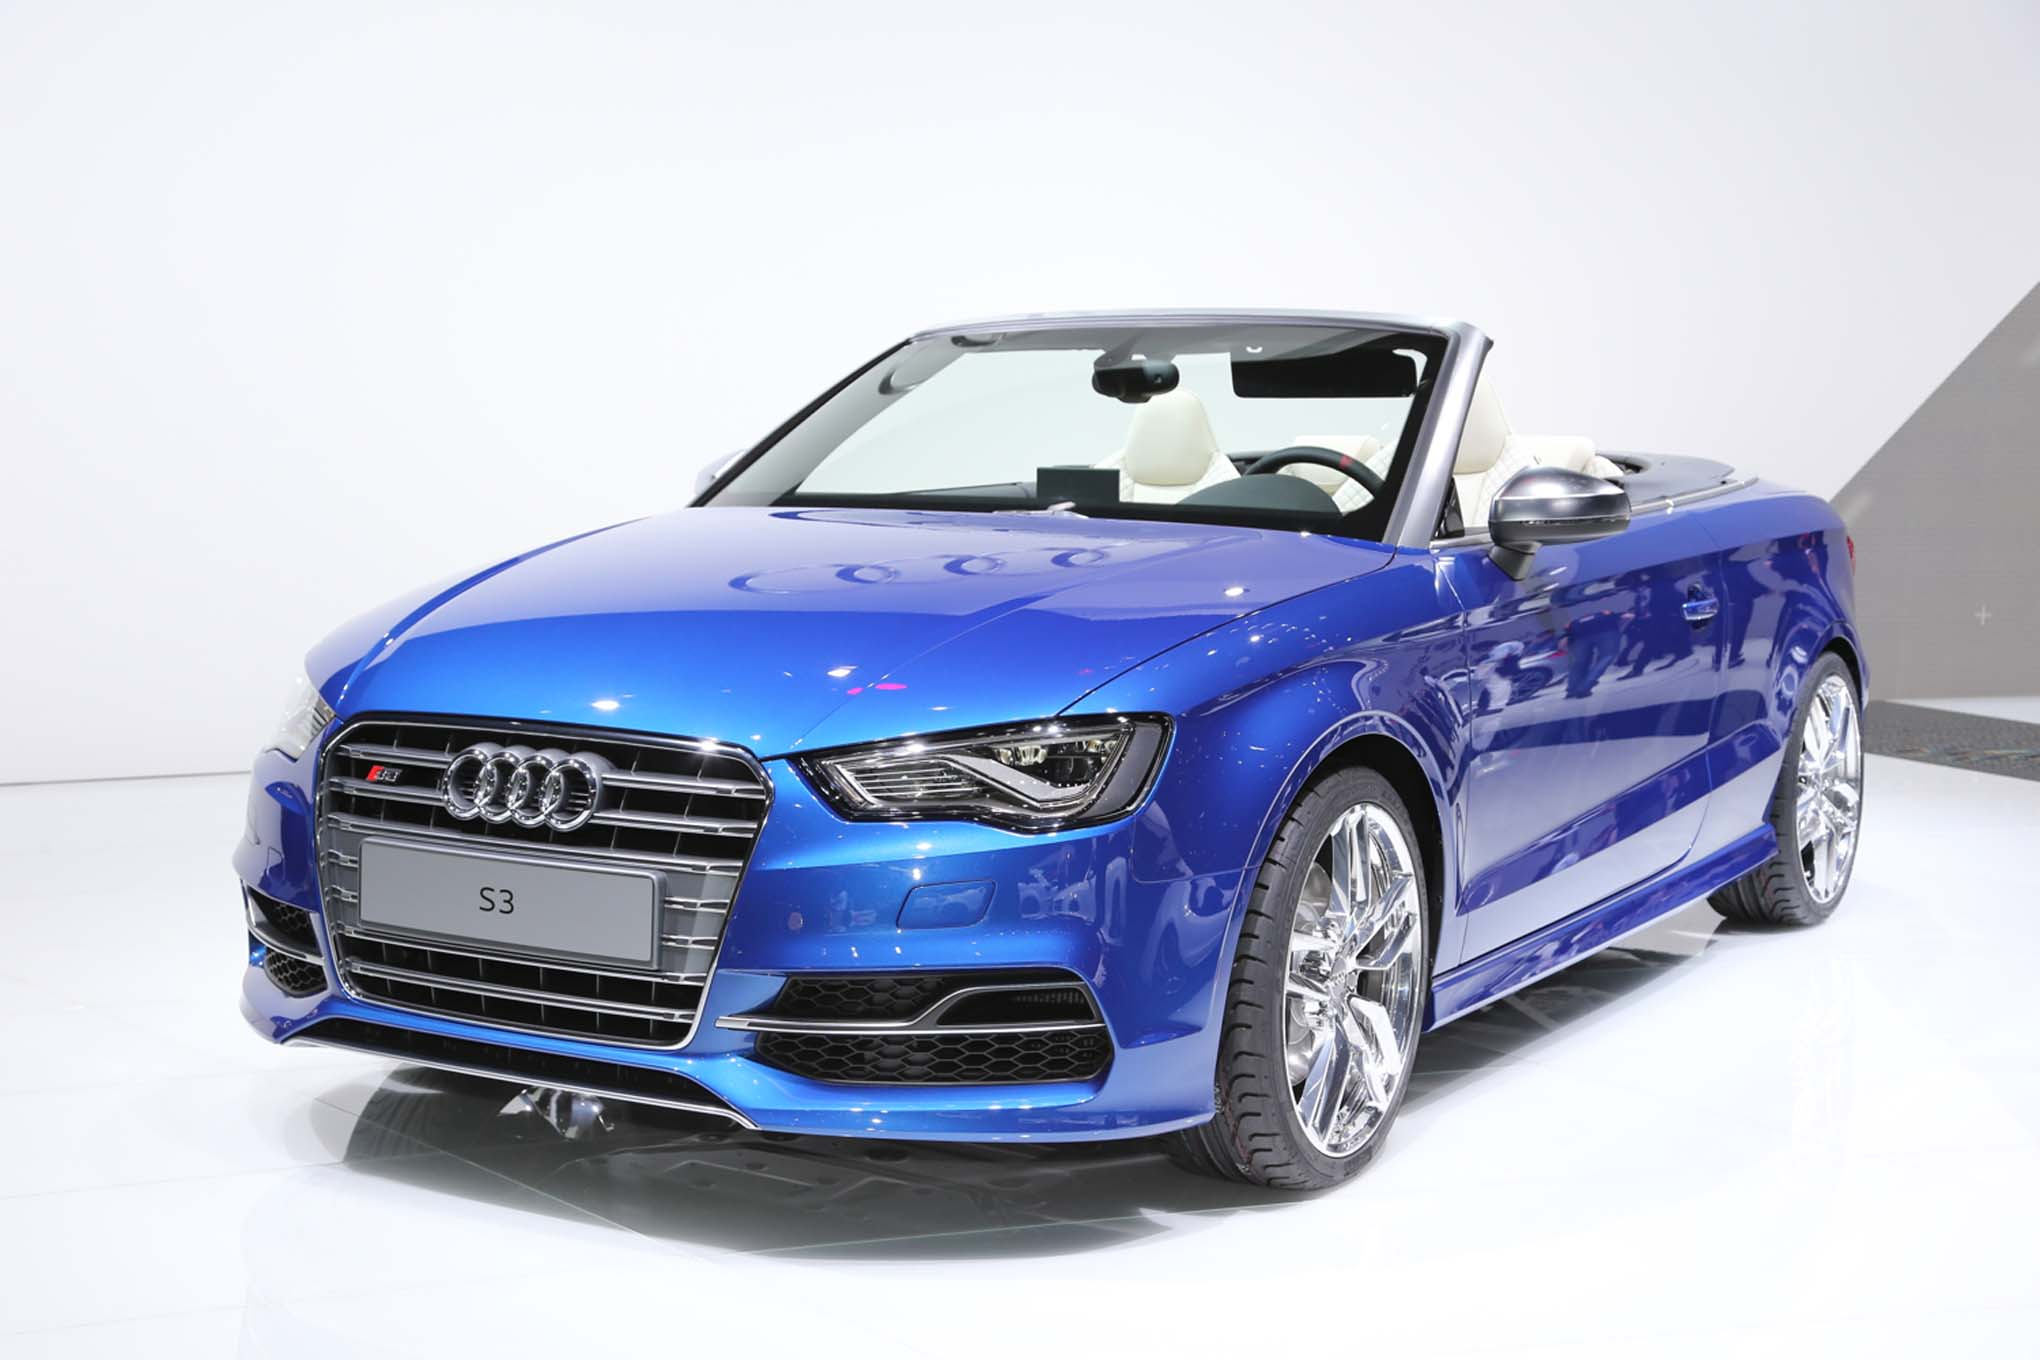 2015 Audi S3 Cabriolet Details Released Before Geneva